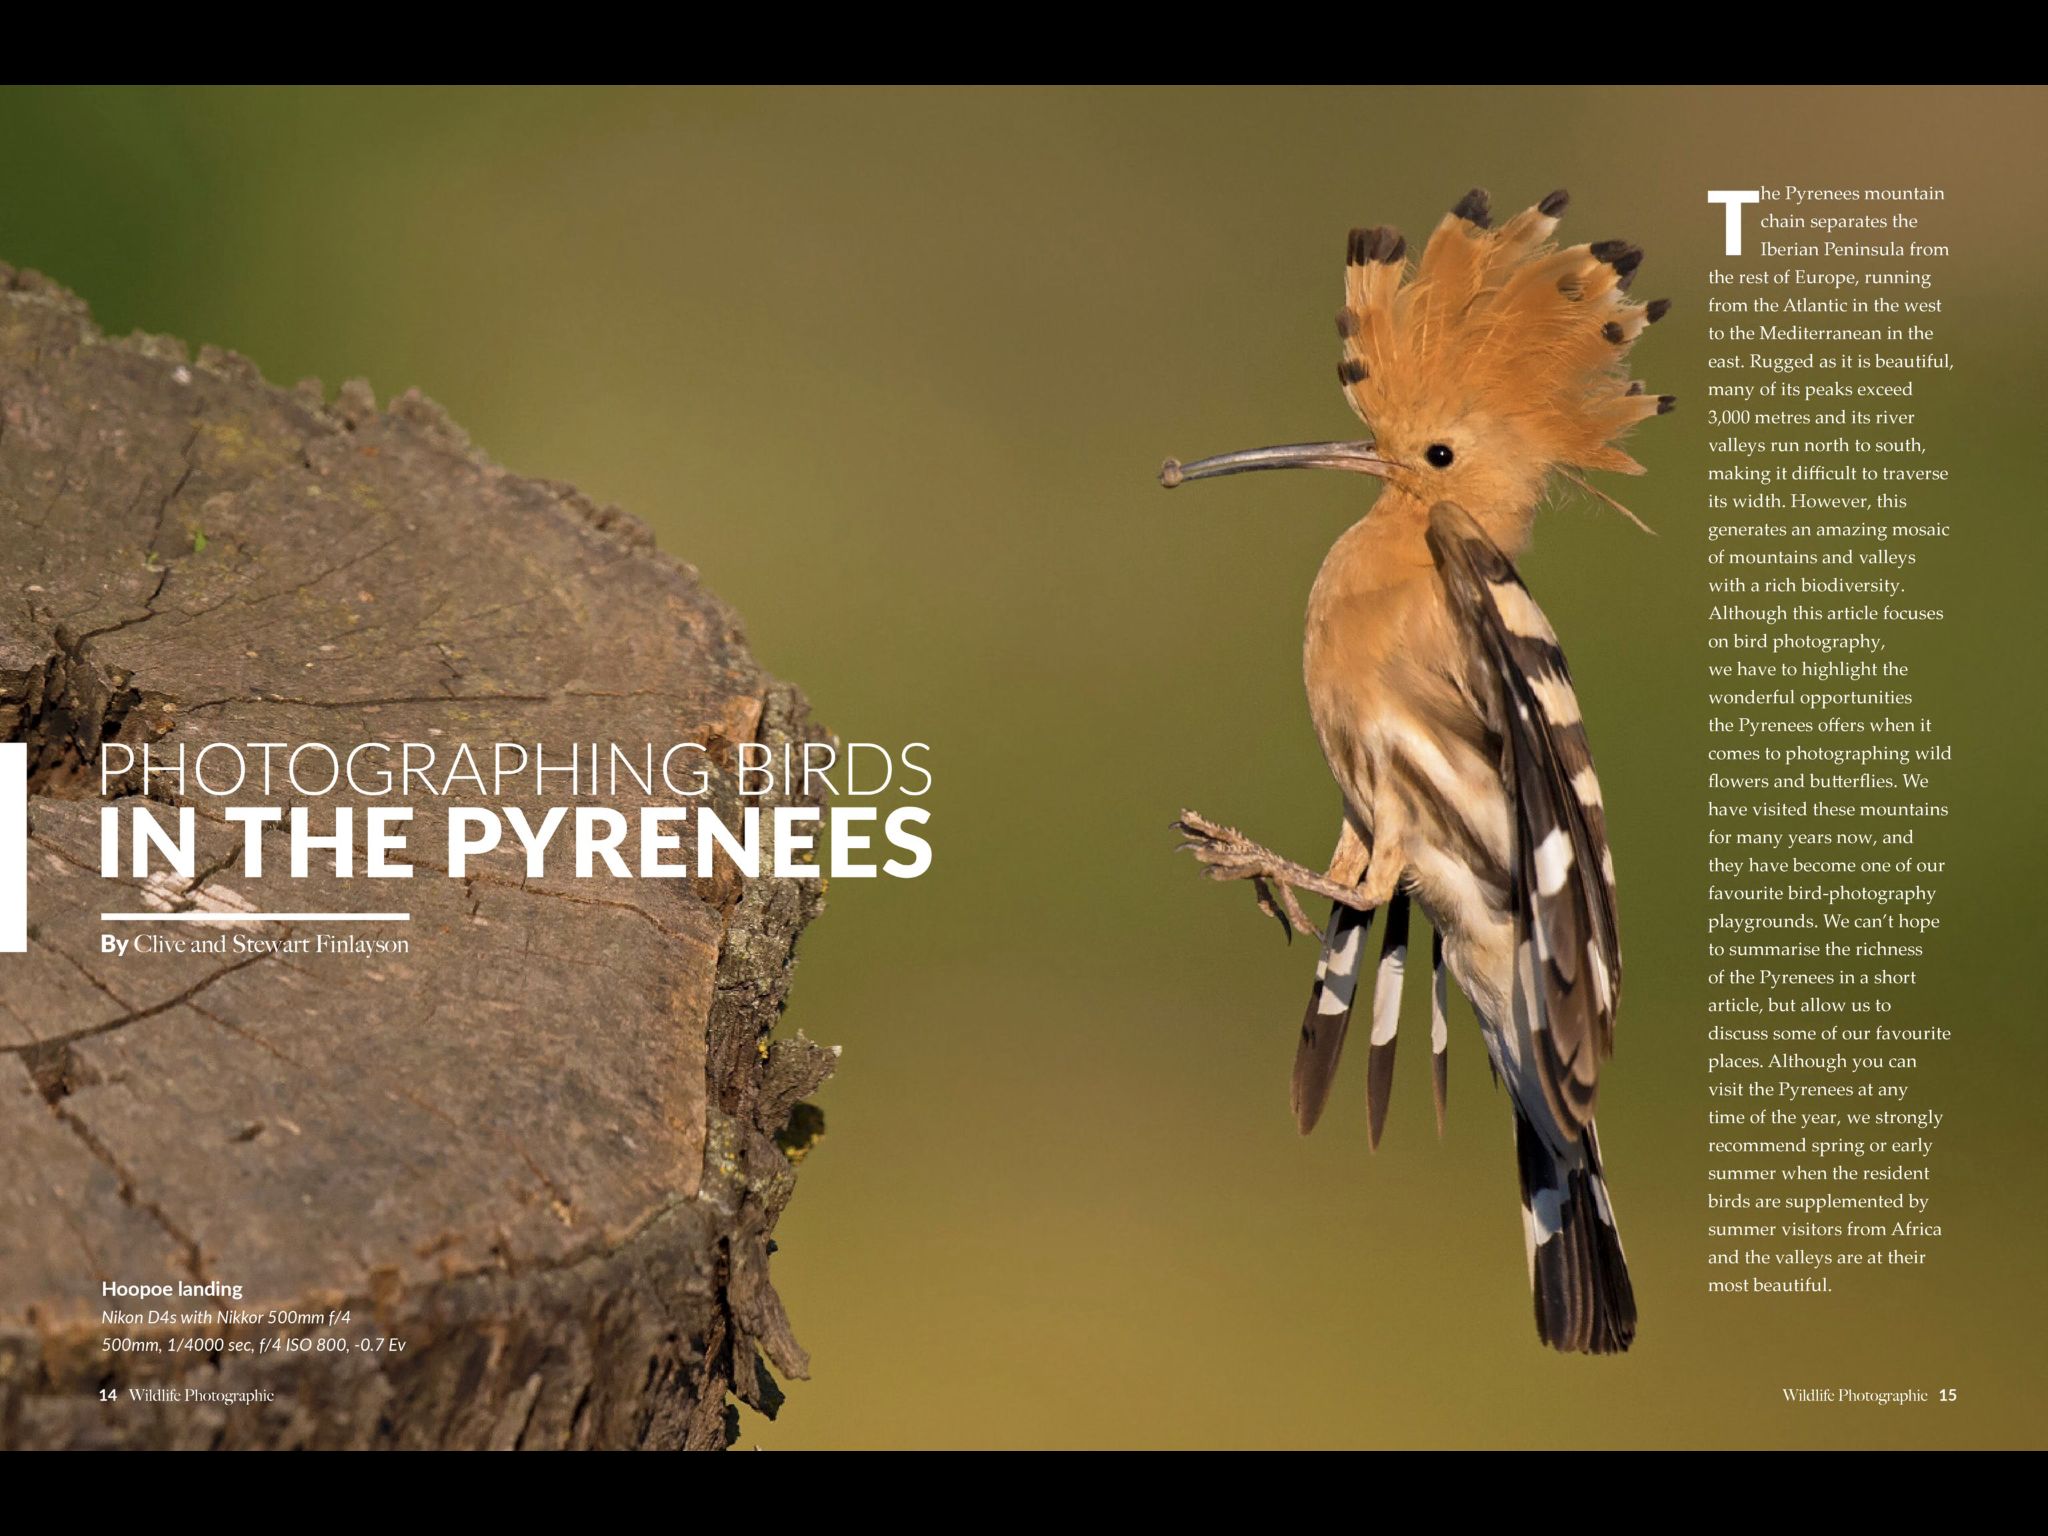 Photographing birds in the Pyrenees Image